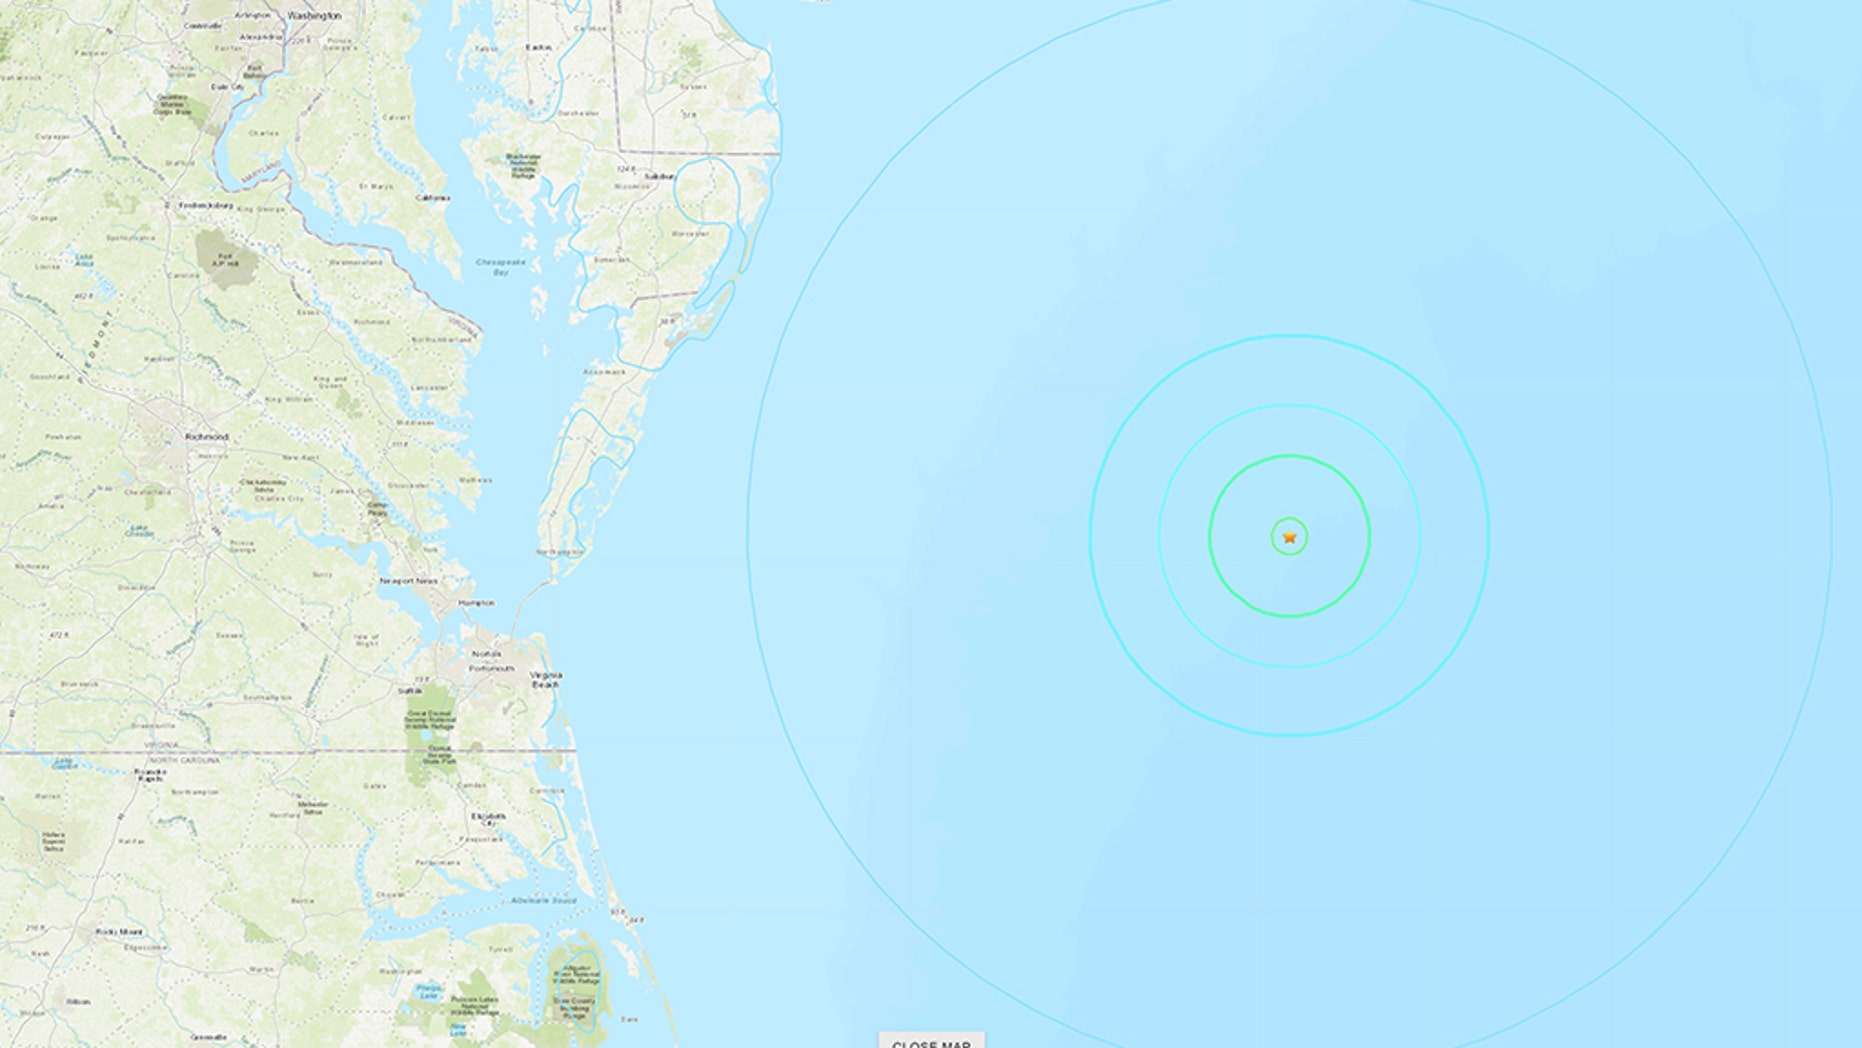 An earthquake of 4.7 magnets struck out of Maryland's coast on Tuesday night, officials said.